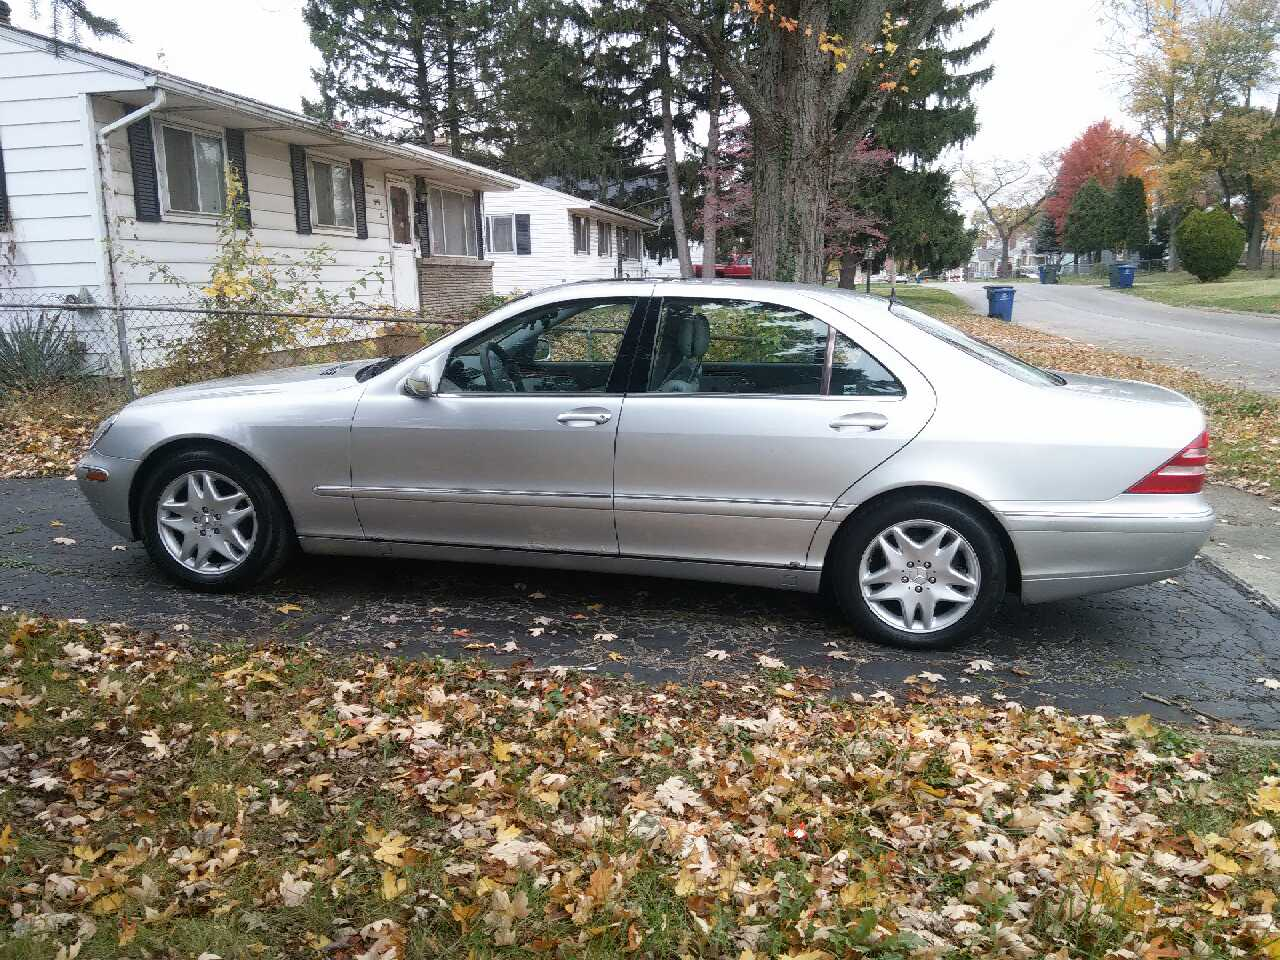 Letgo 00 mercedes benz s430 in bexley oh for 2003 mercedes benz s430 problems